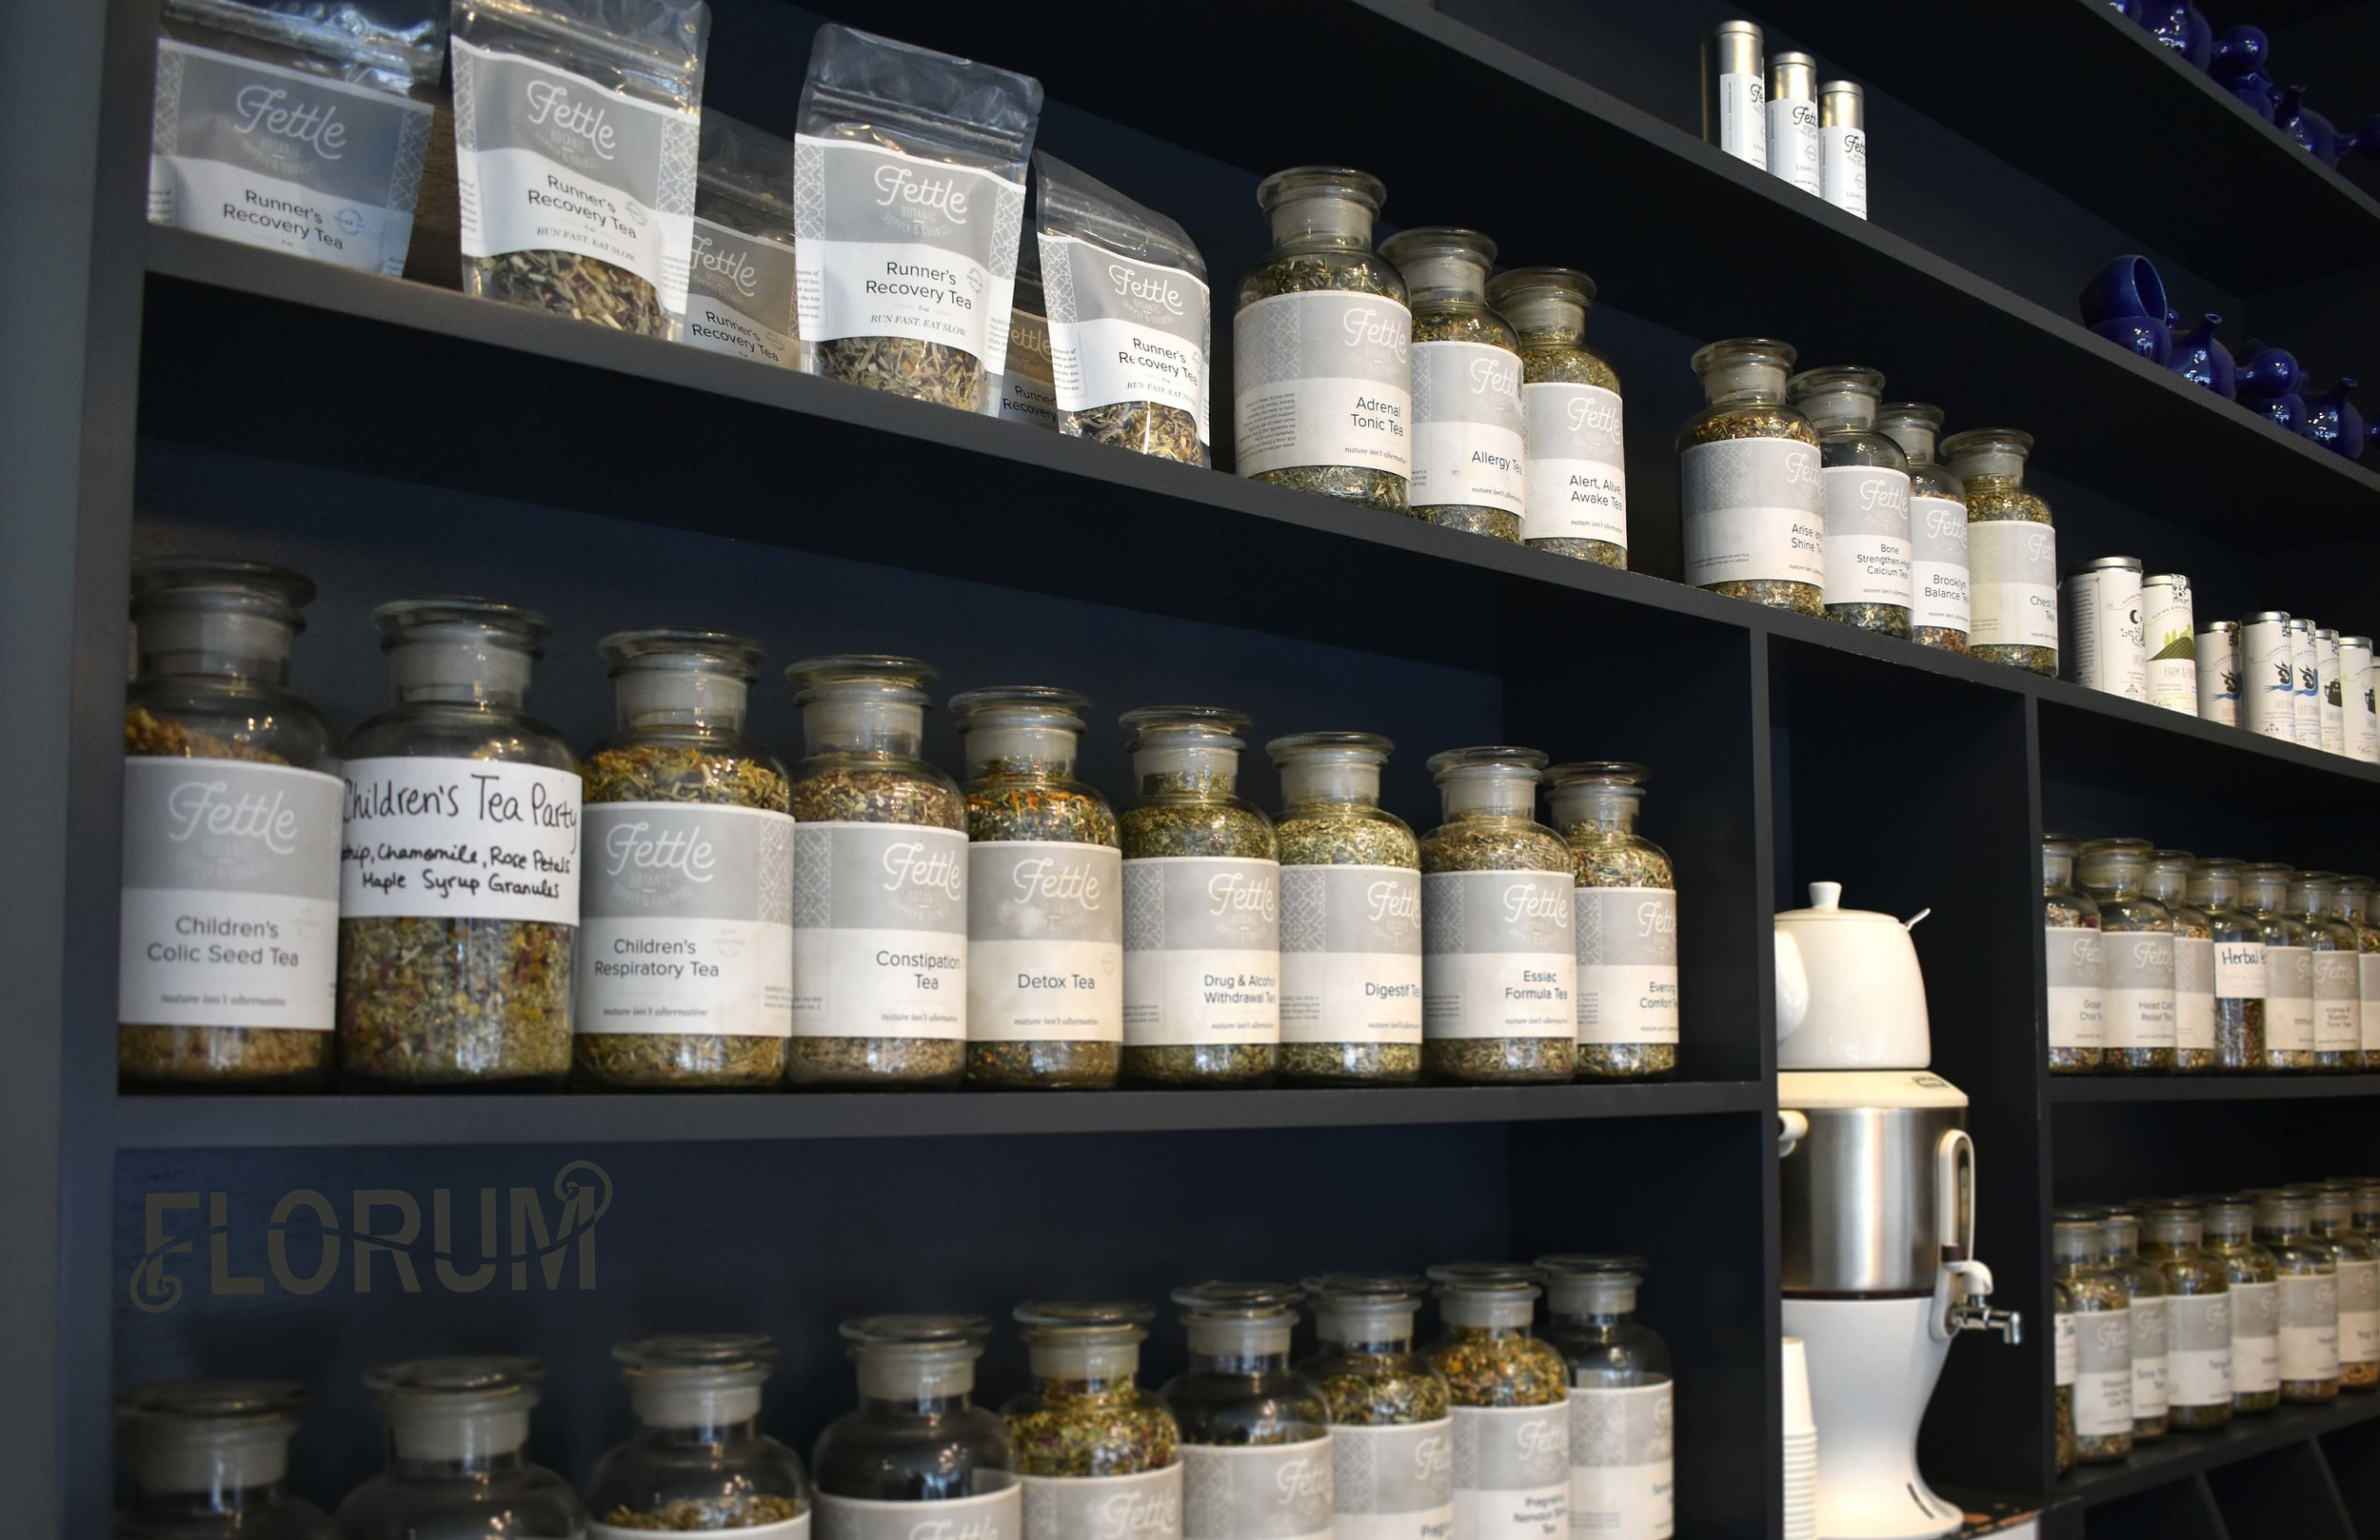 If you love teas, you'll find that Fettle Botanic Supply & Counsel has every type that you can imagine. Many are premade blends however if you are looking for something specific, you can consult a friendly herbal assistant.